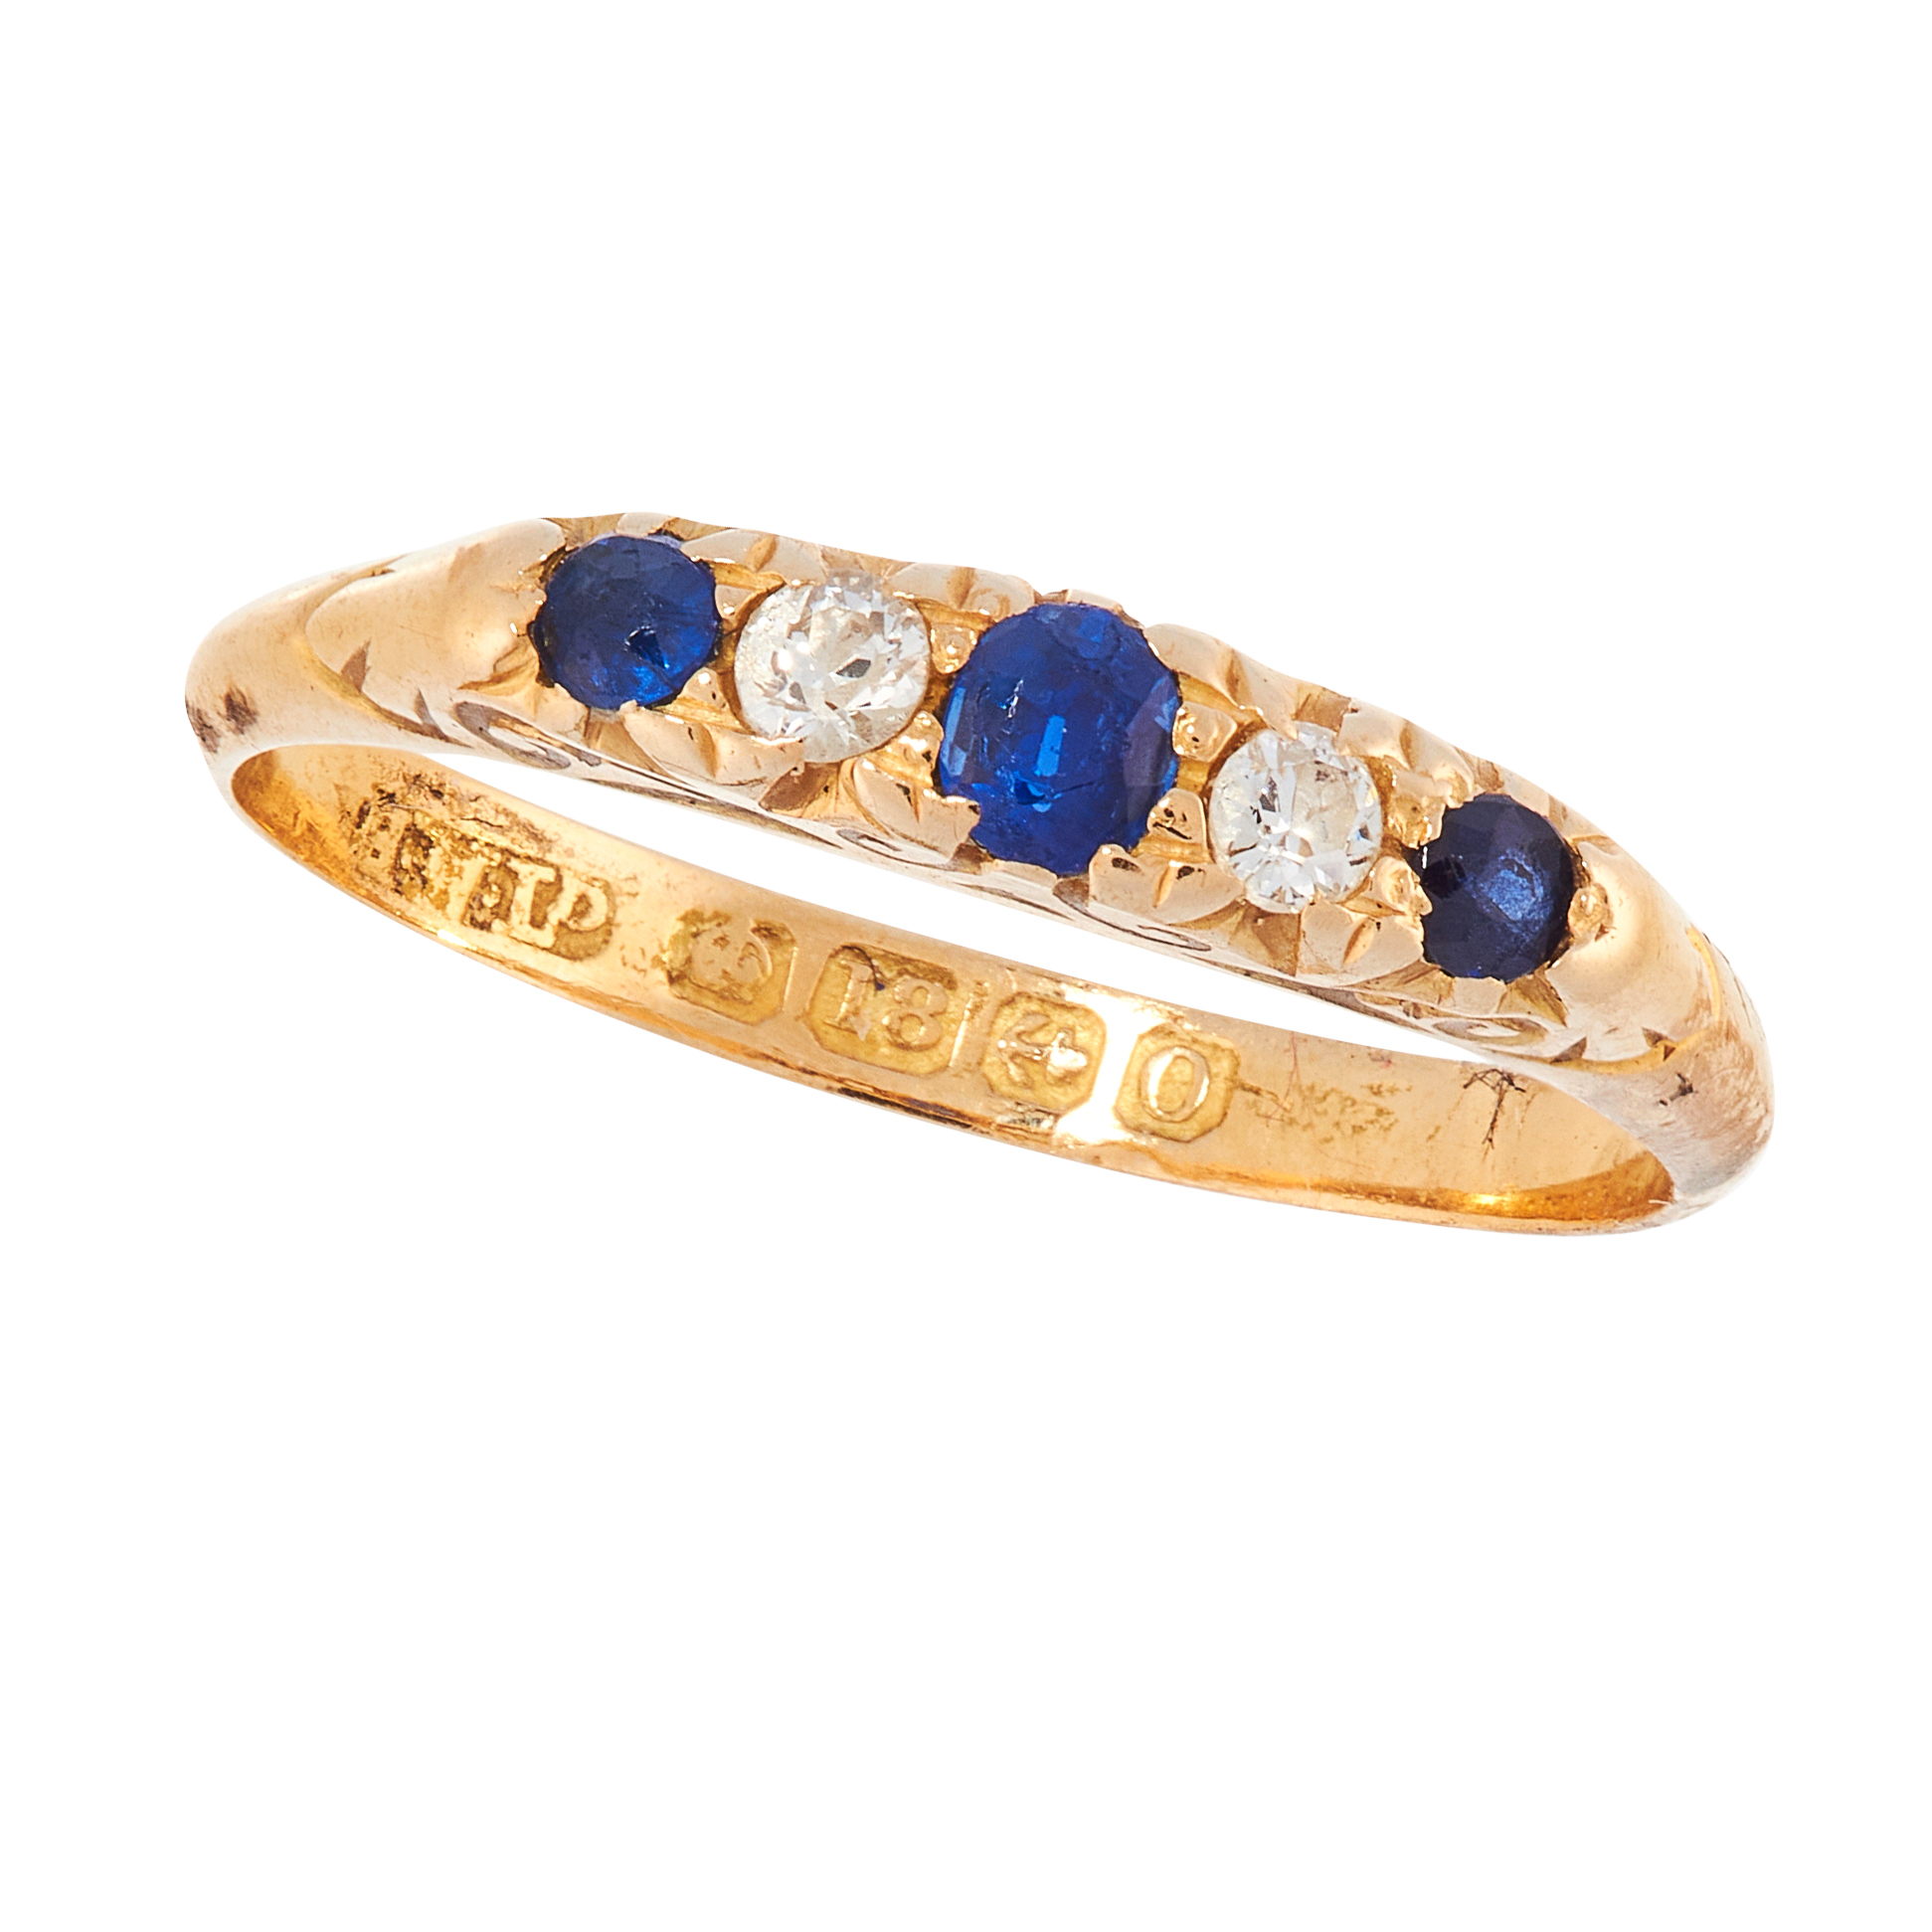 AN ANTIQUE SAPPHIRE AND DIAMOND DRESS RING, 1913 in 18ct yellow gold, set with a trio of graduated